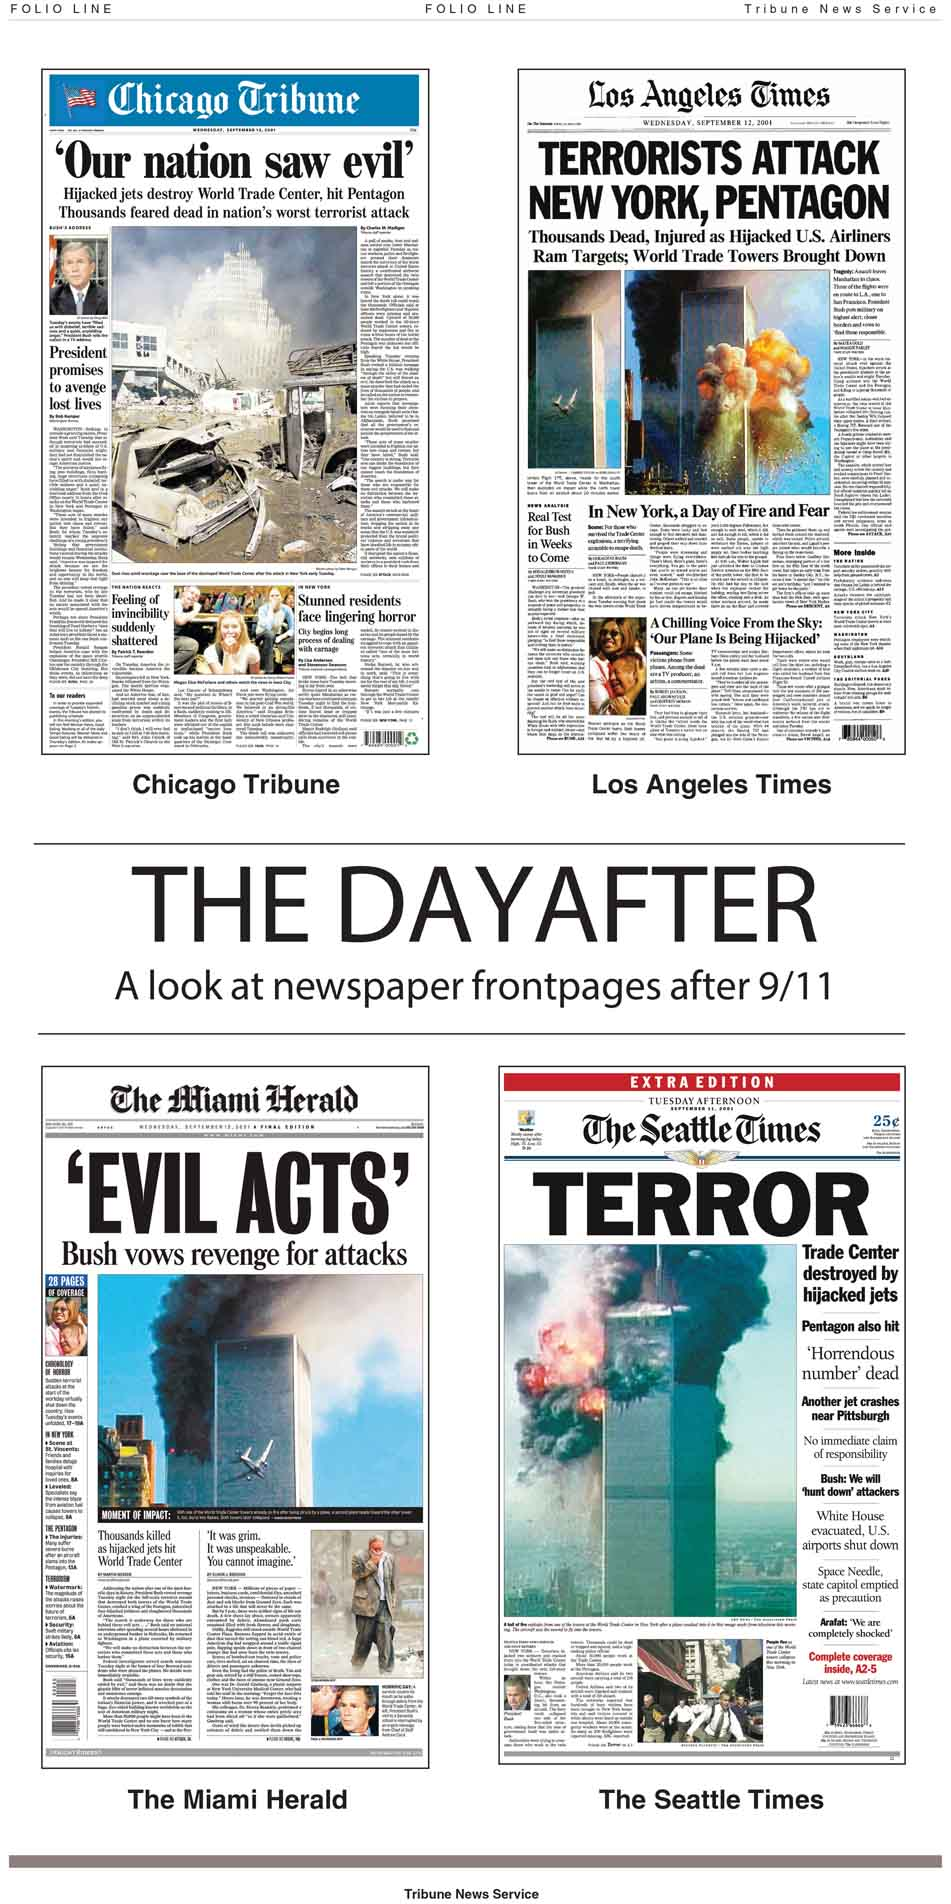 Full page graphic showing front pages of newspapers the day after September 11th, 2001.